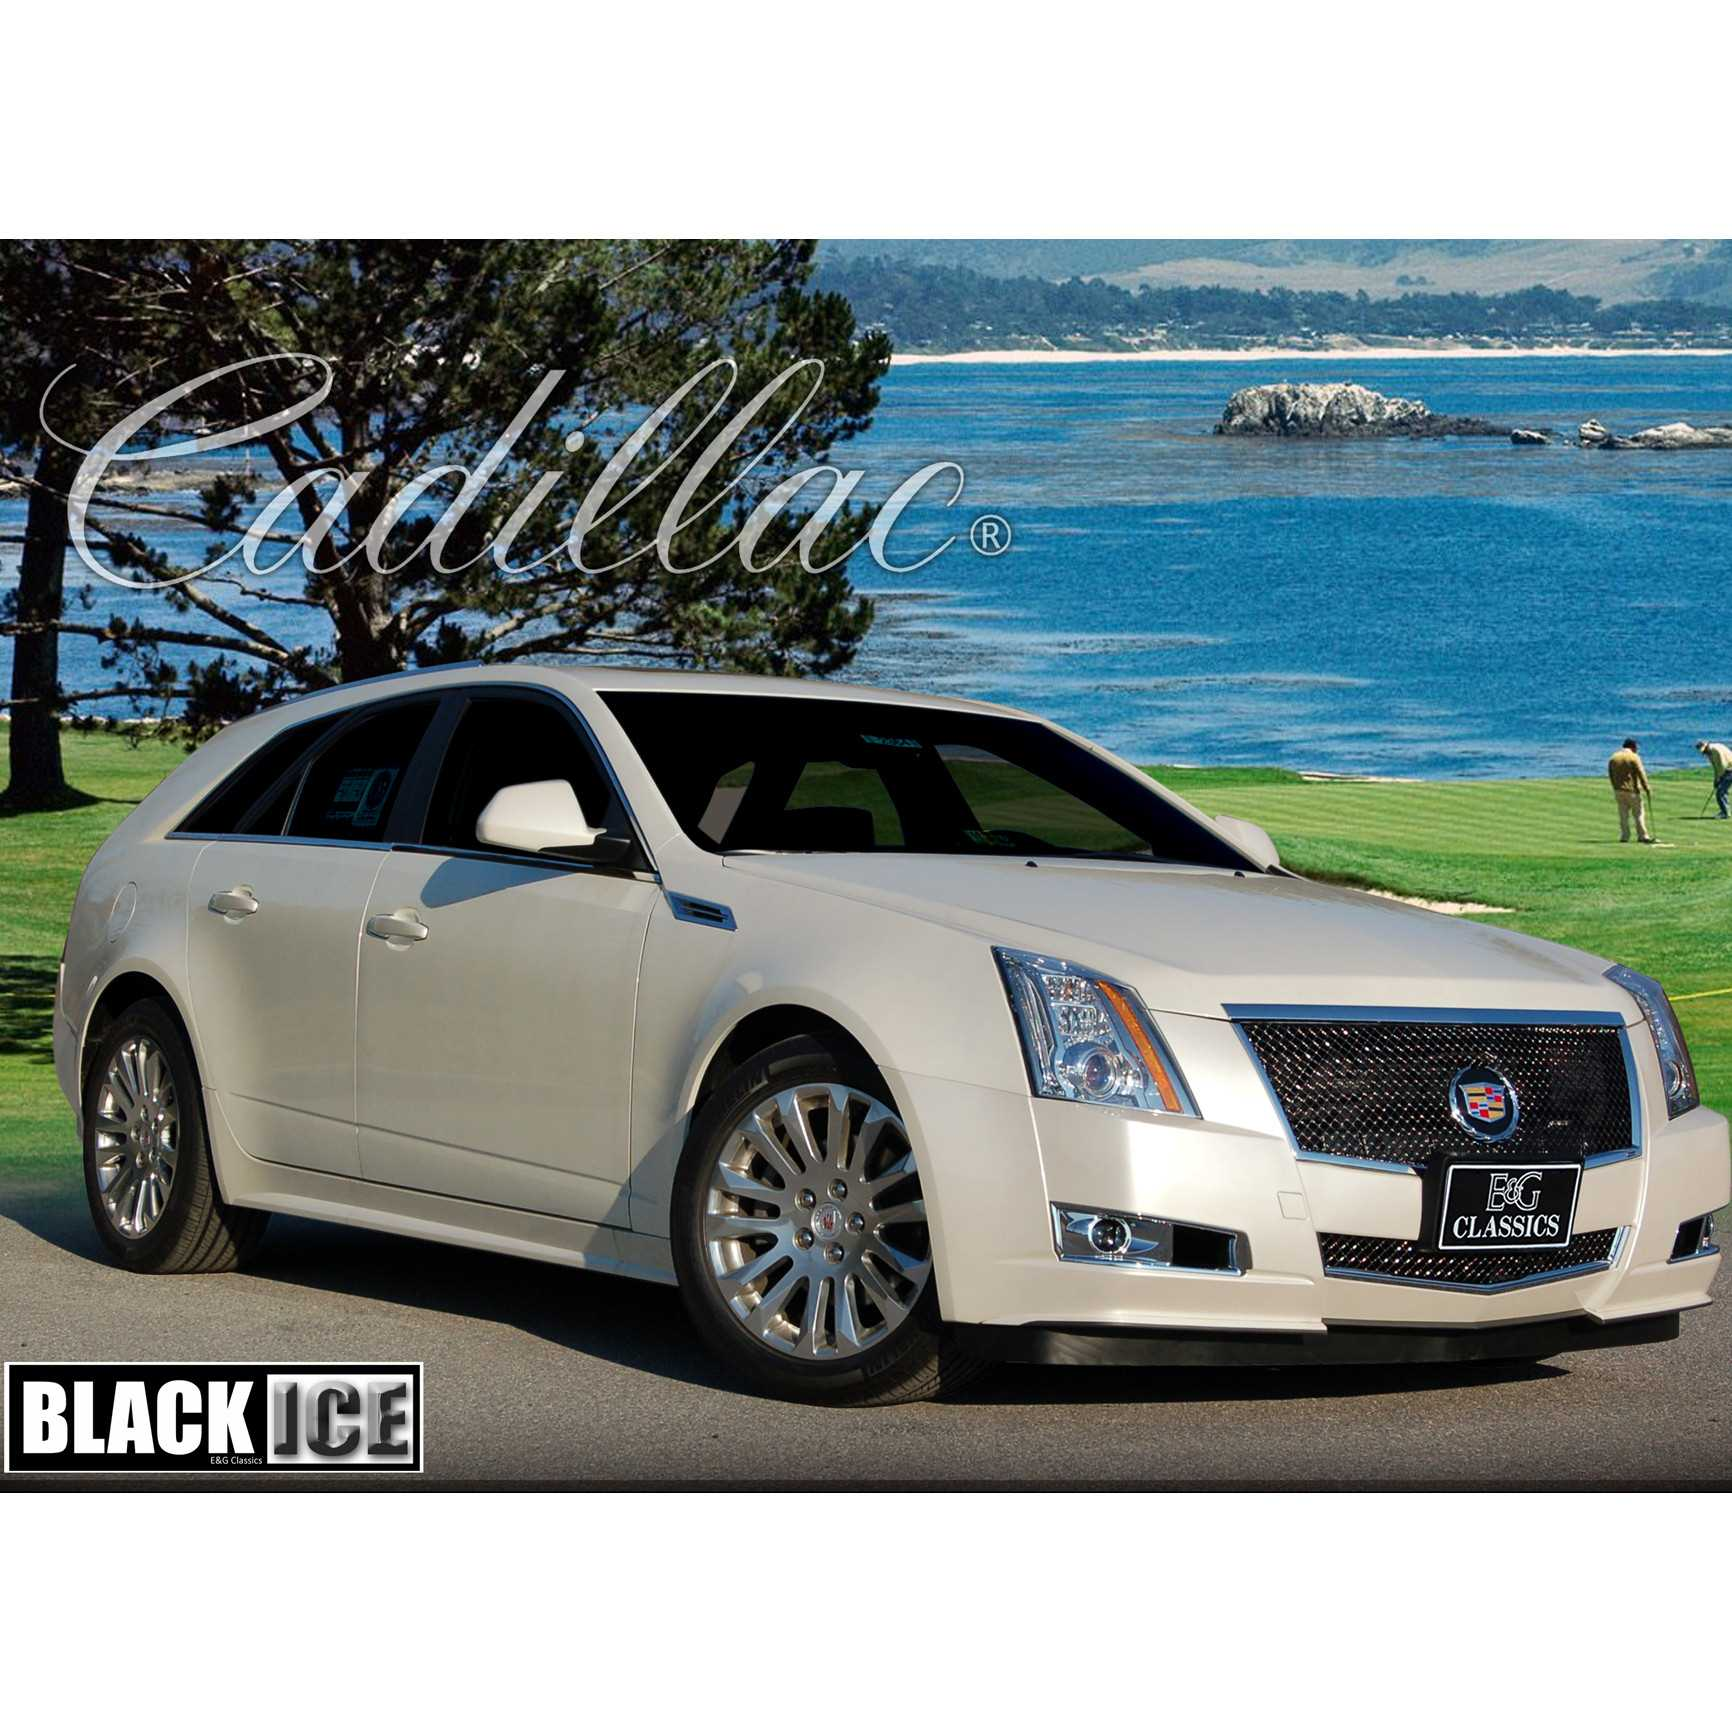 Cadillac Cts 2013 Price: E&G Classics 2008-2013 Cadillac CTS Grille 2Pc Classics Black Ice Heavy Mesh Grille